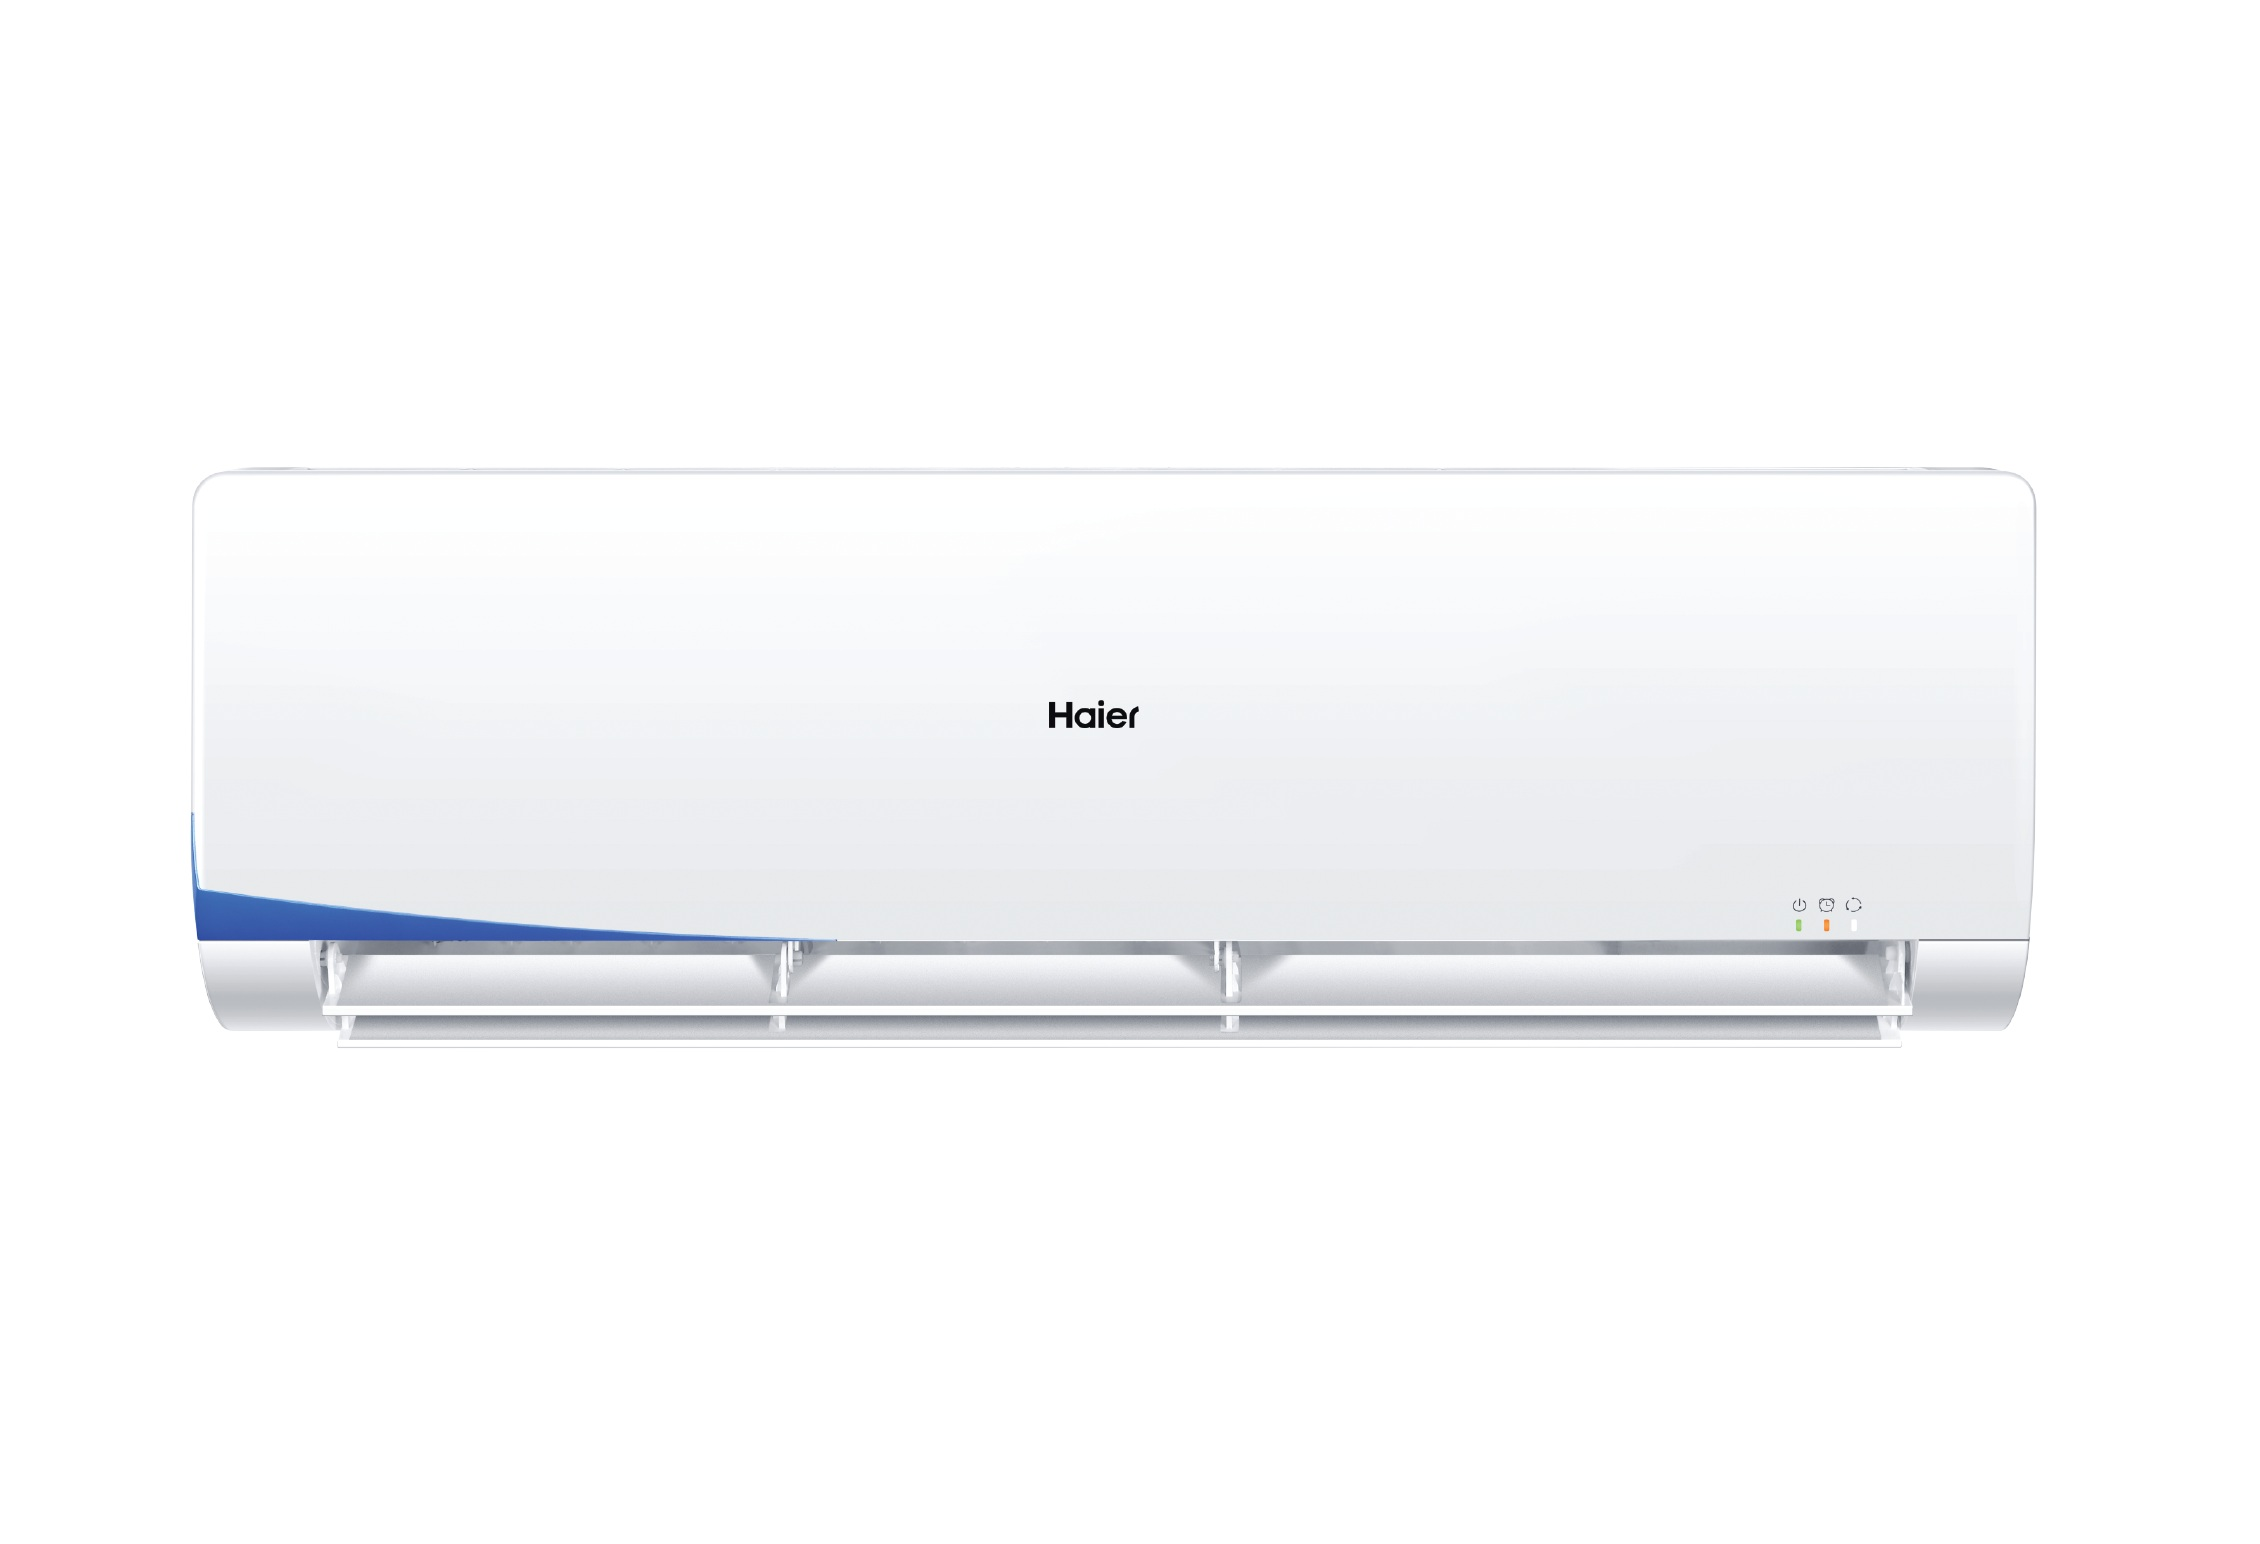 Haier 1.5 Ton Nebula Inverter Air Conditioner best price in bd